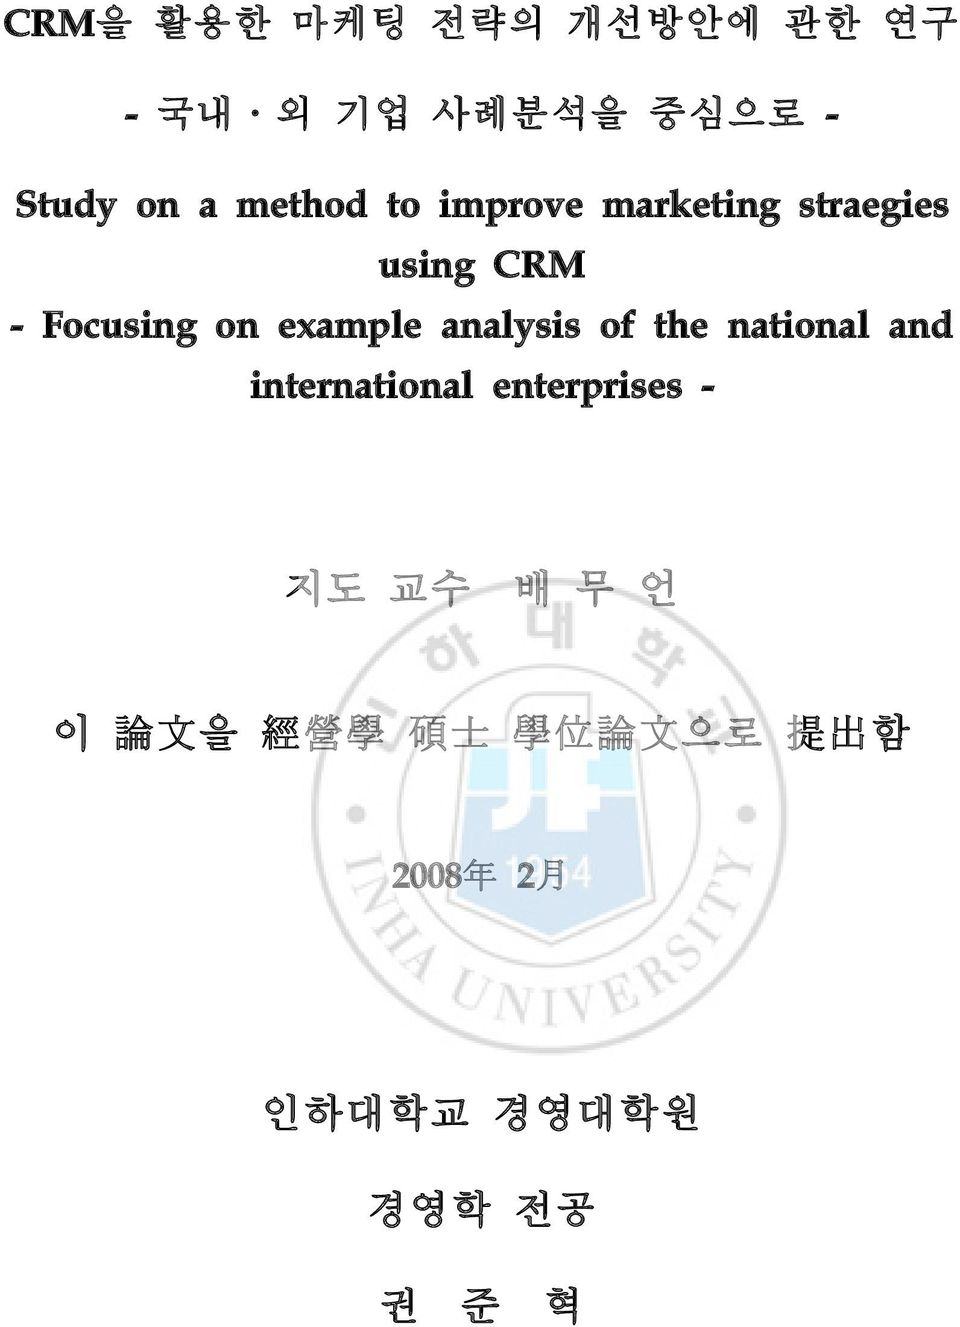 example analysis of the national and international enterprises - 지도